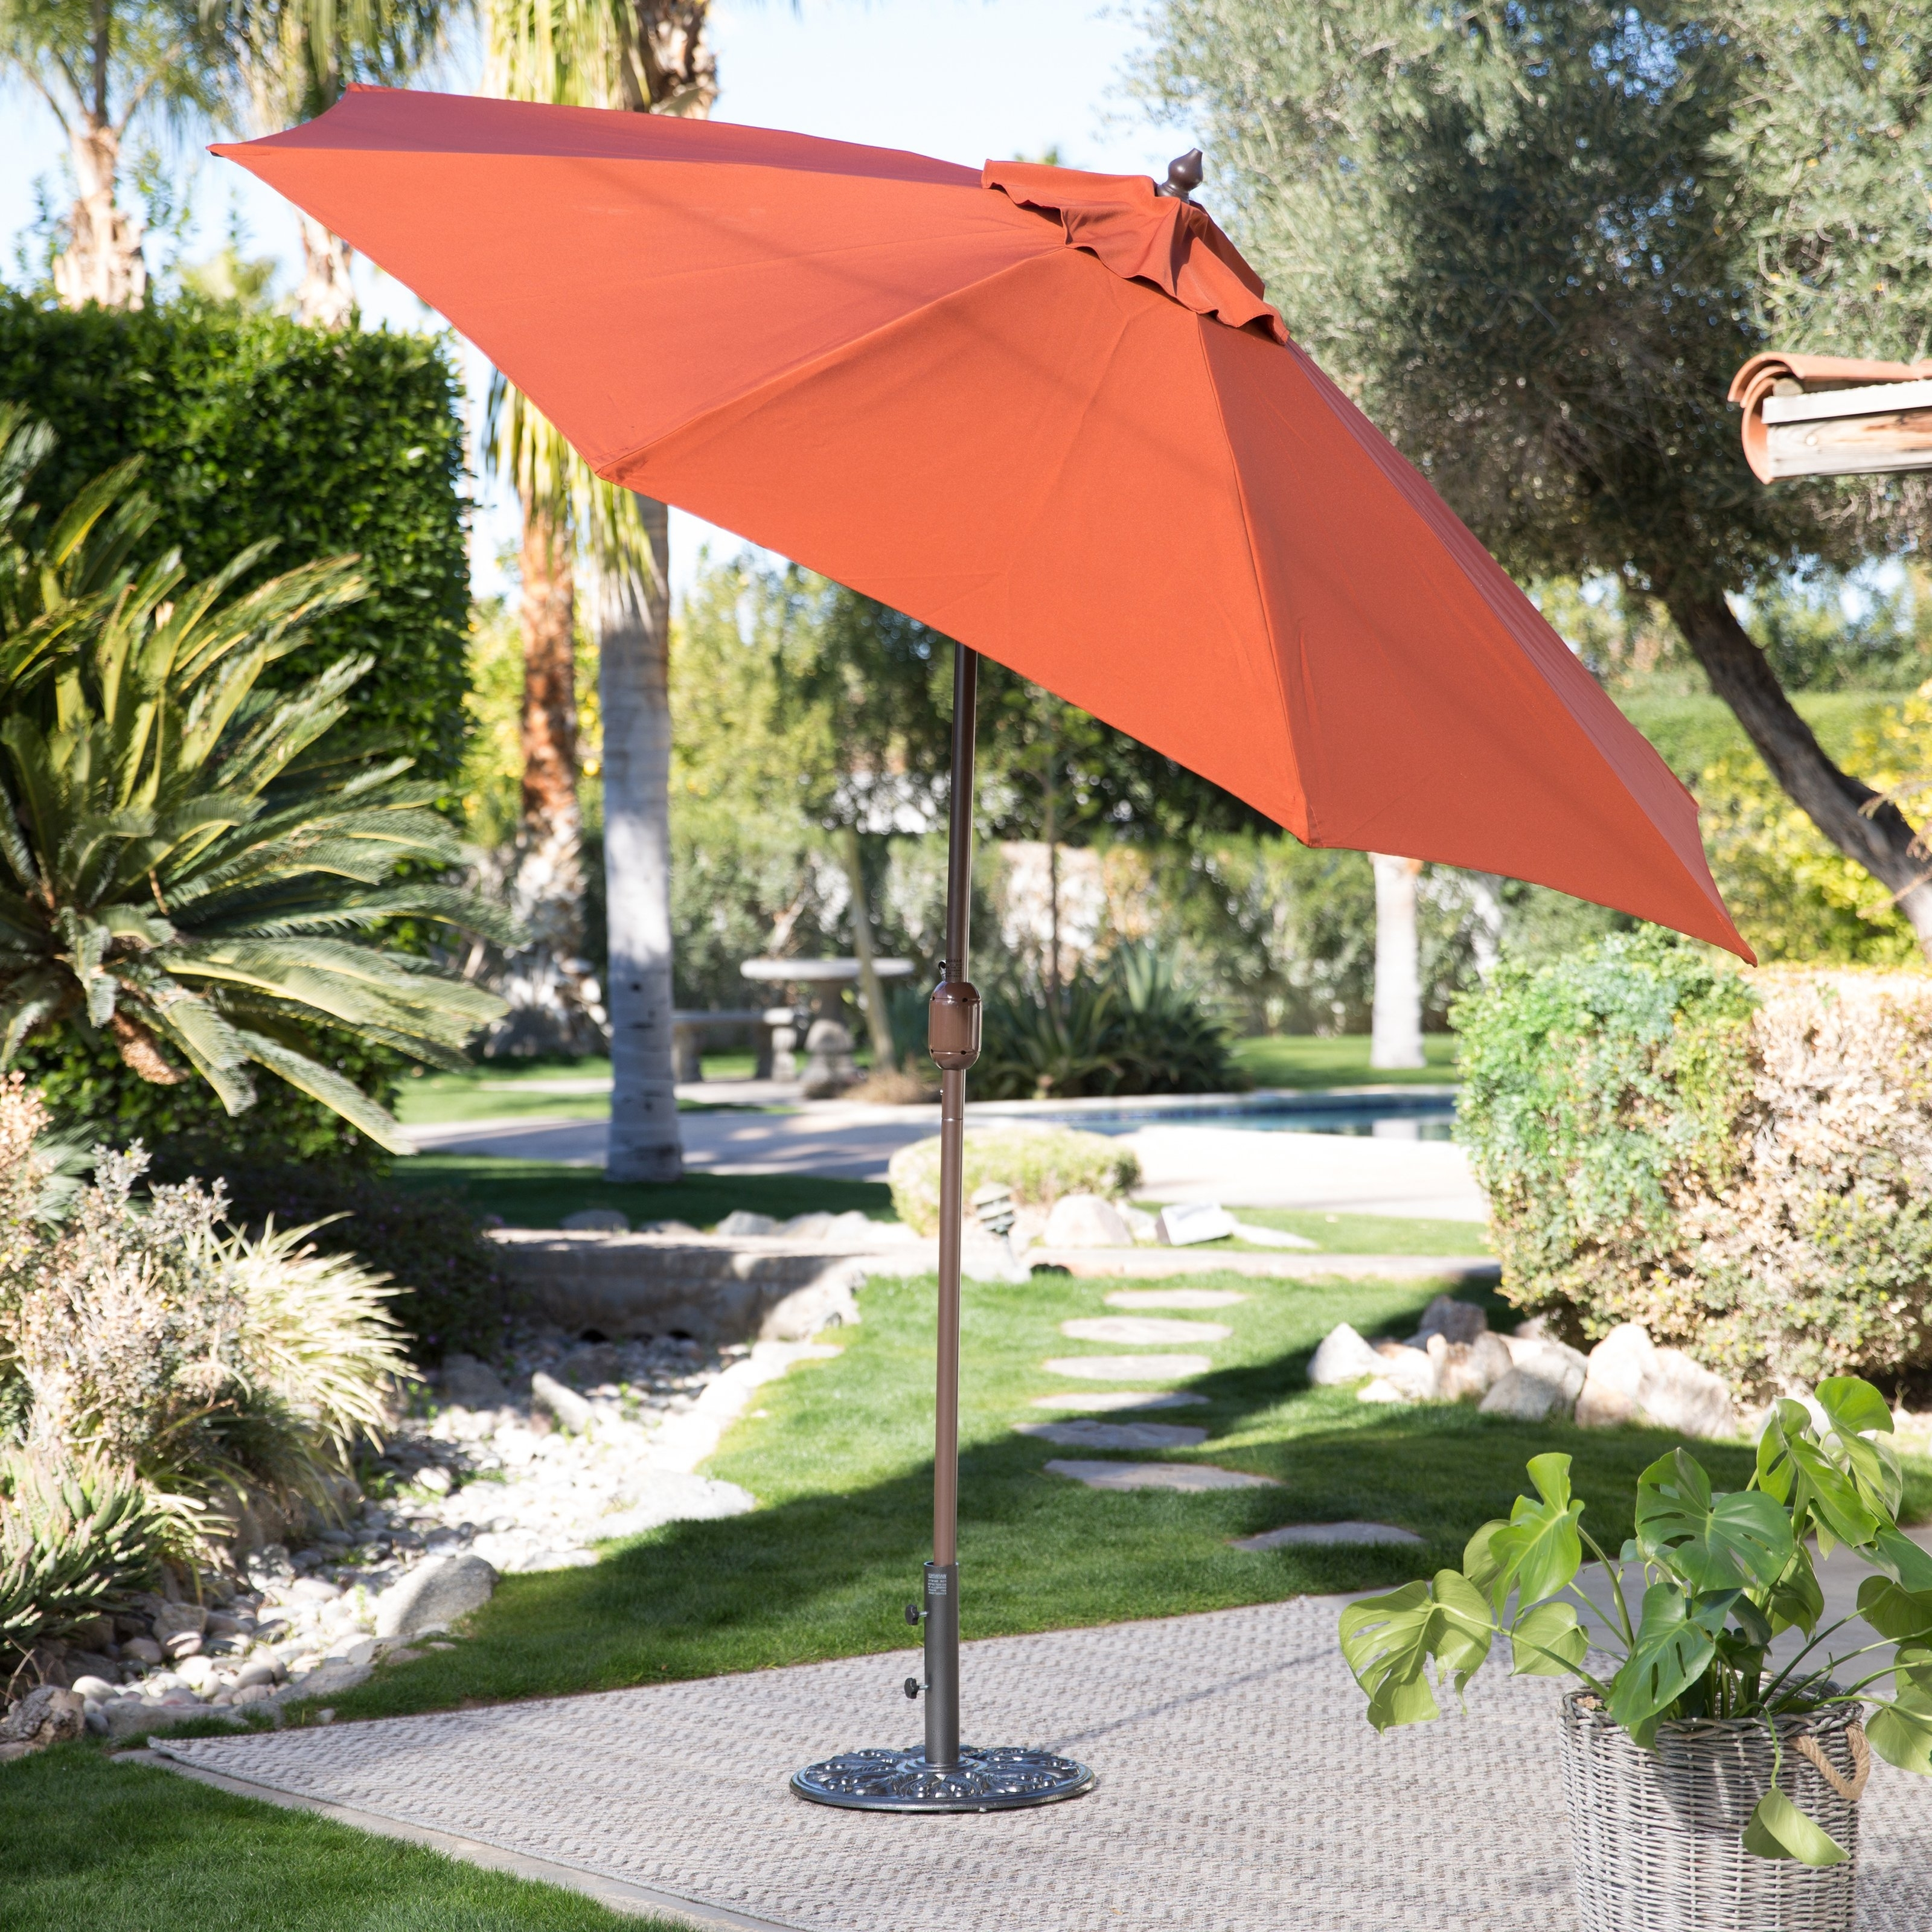 Latest Coral Coast 9 Ft. Spun Poly Push Button Tilt Wind Resistant Patio Within Patio Umbrellas With Fans (Gallery 18 of 20)